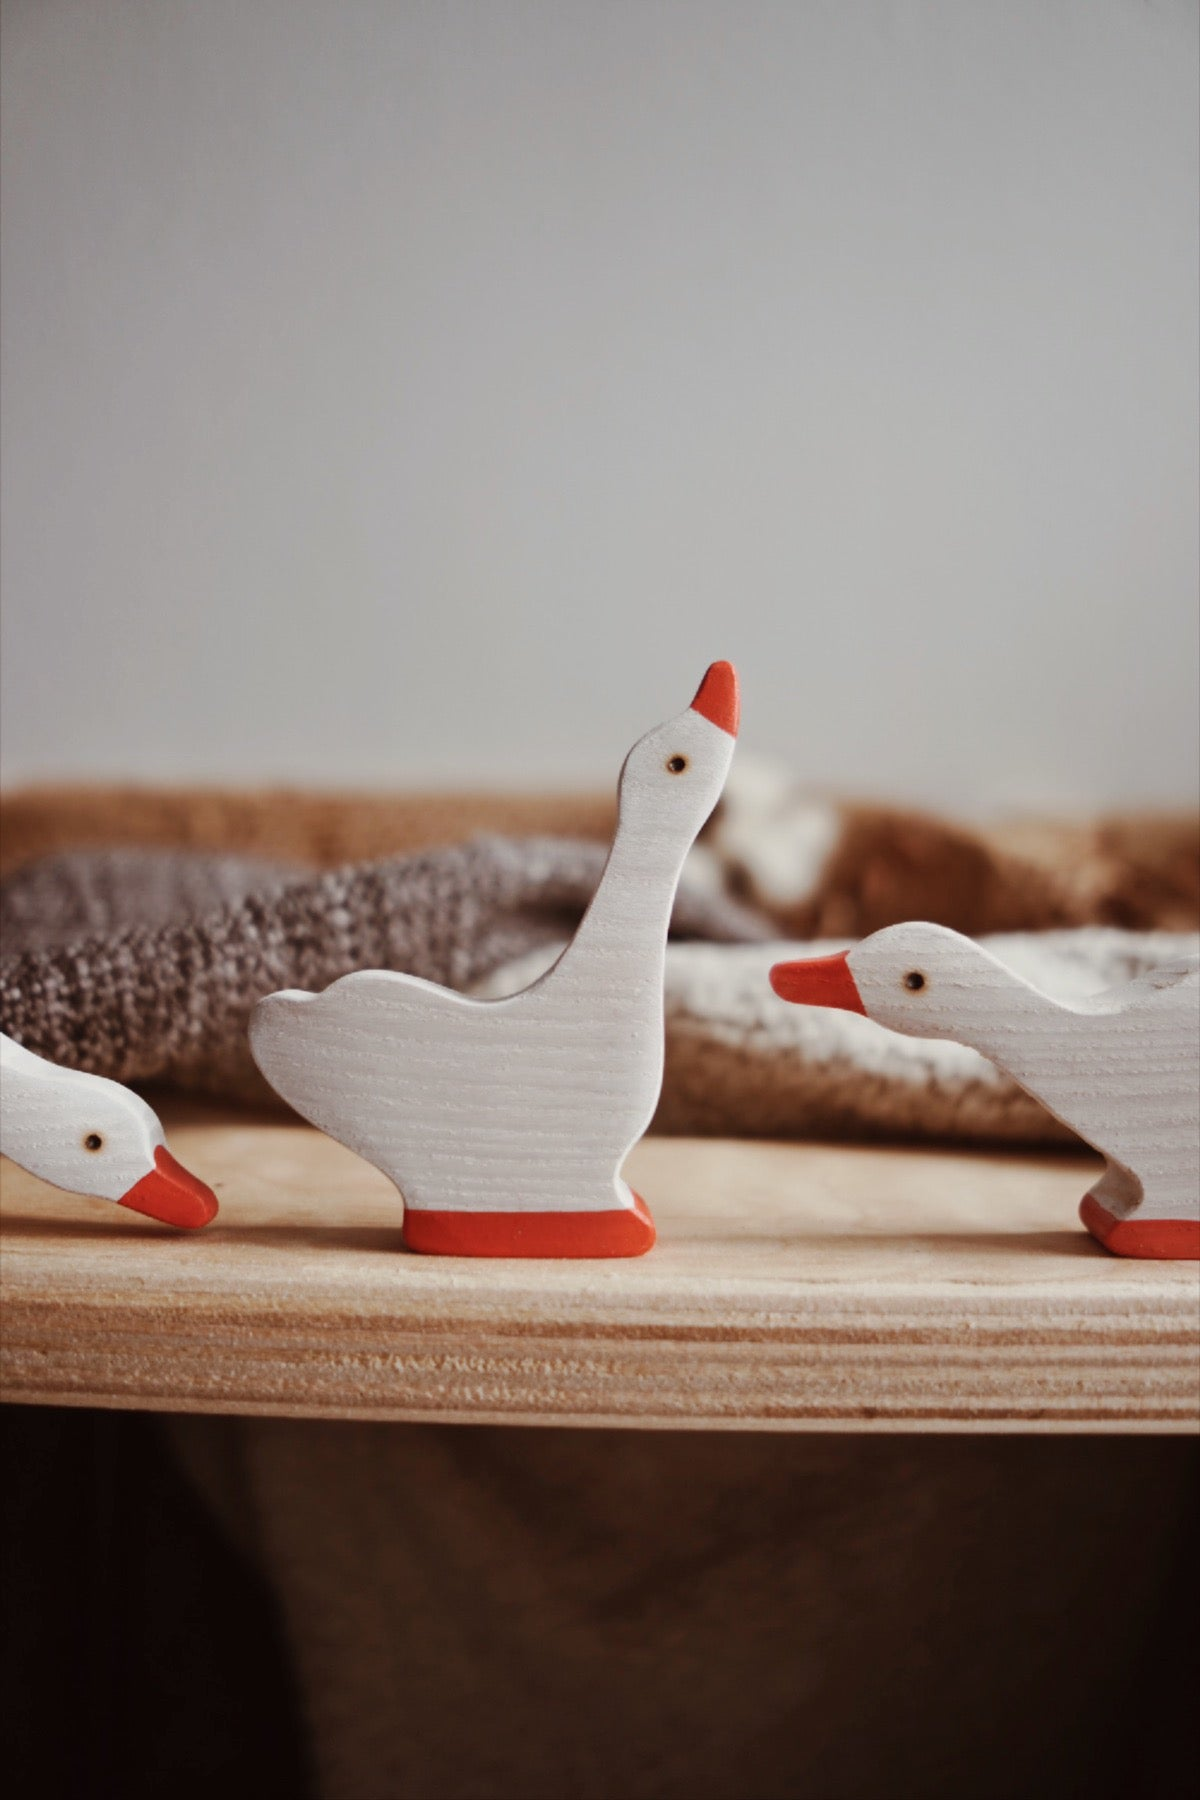 Gander, Geese and Gosling - Set of 4